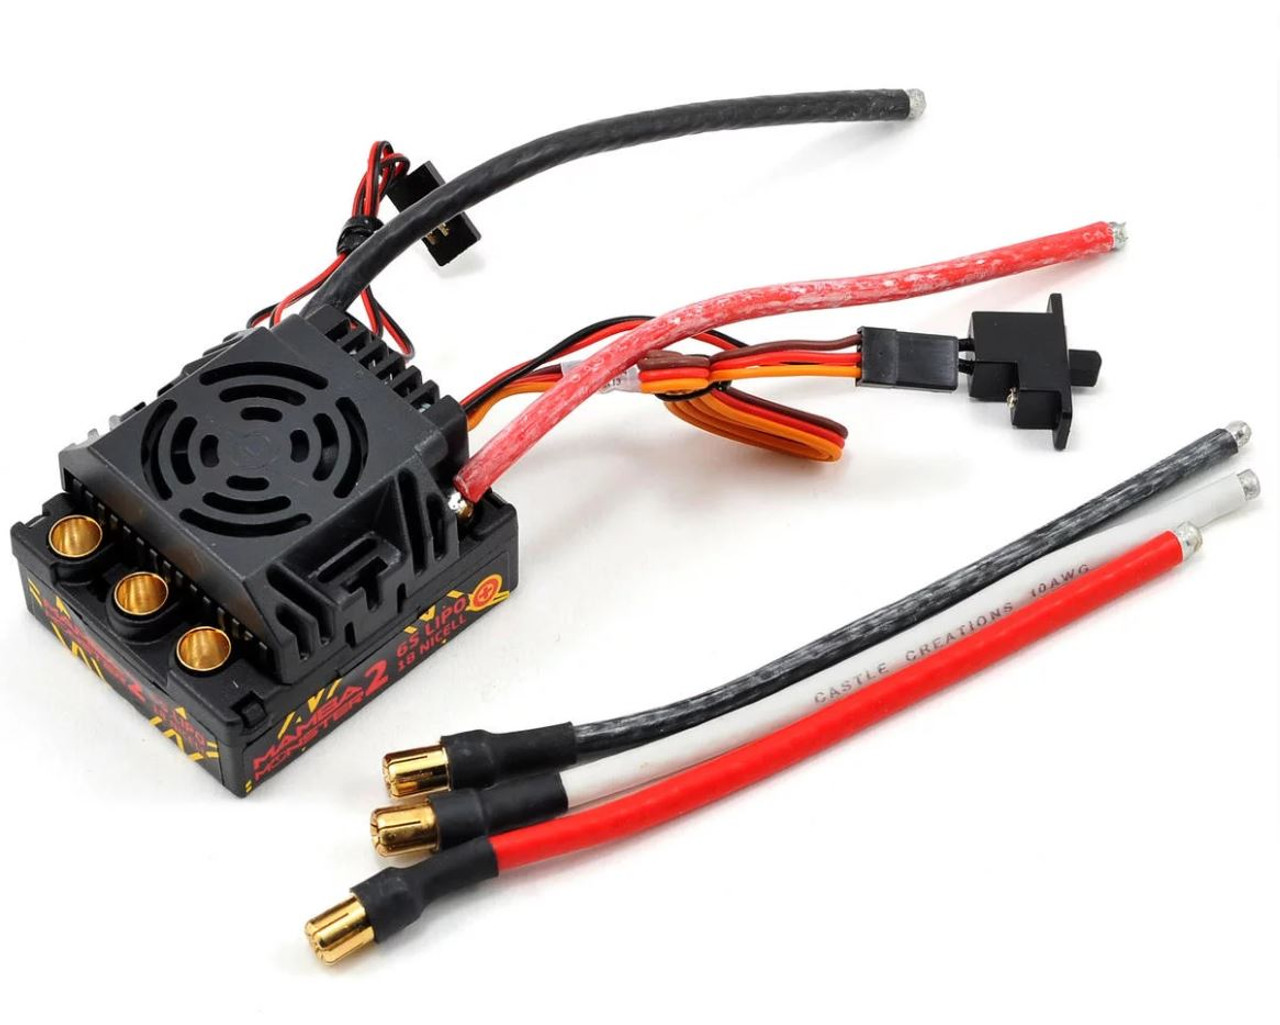 Castle Creations Mamba Monster 2 1/8th scale ESC